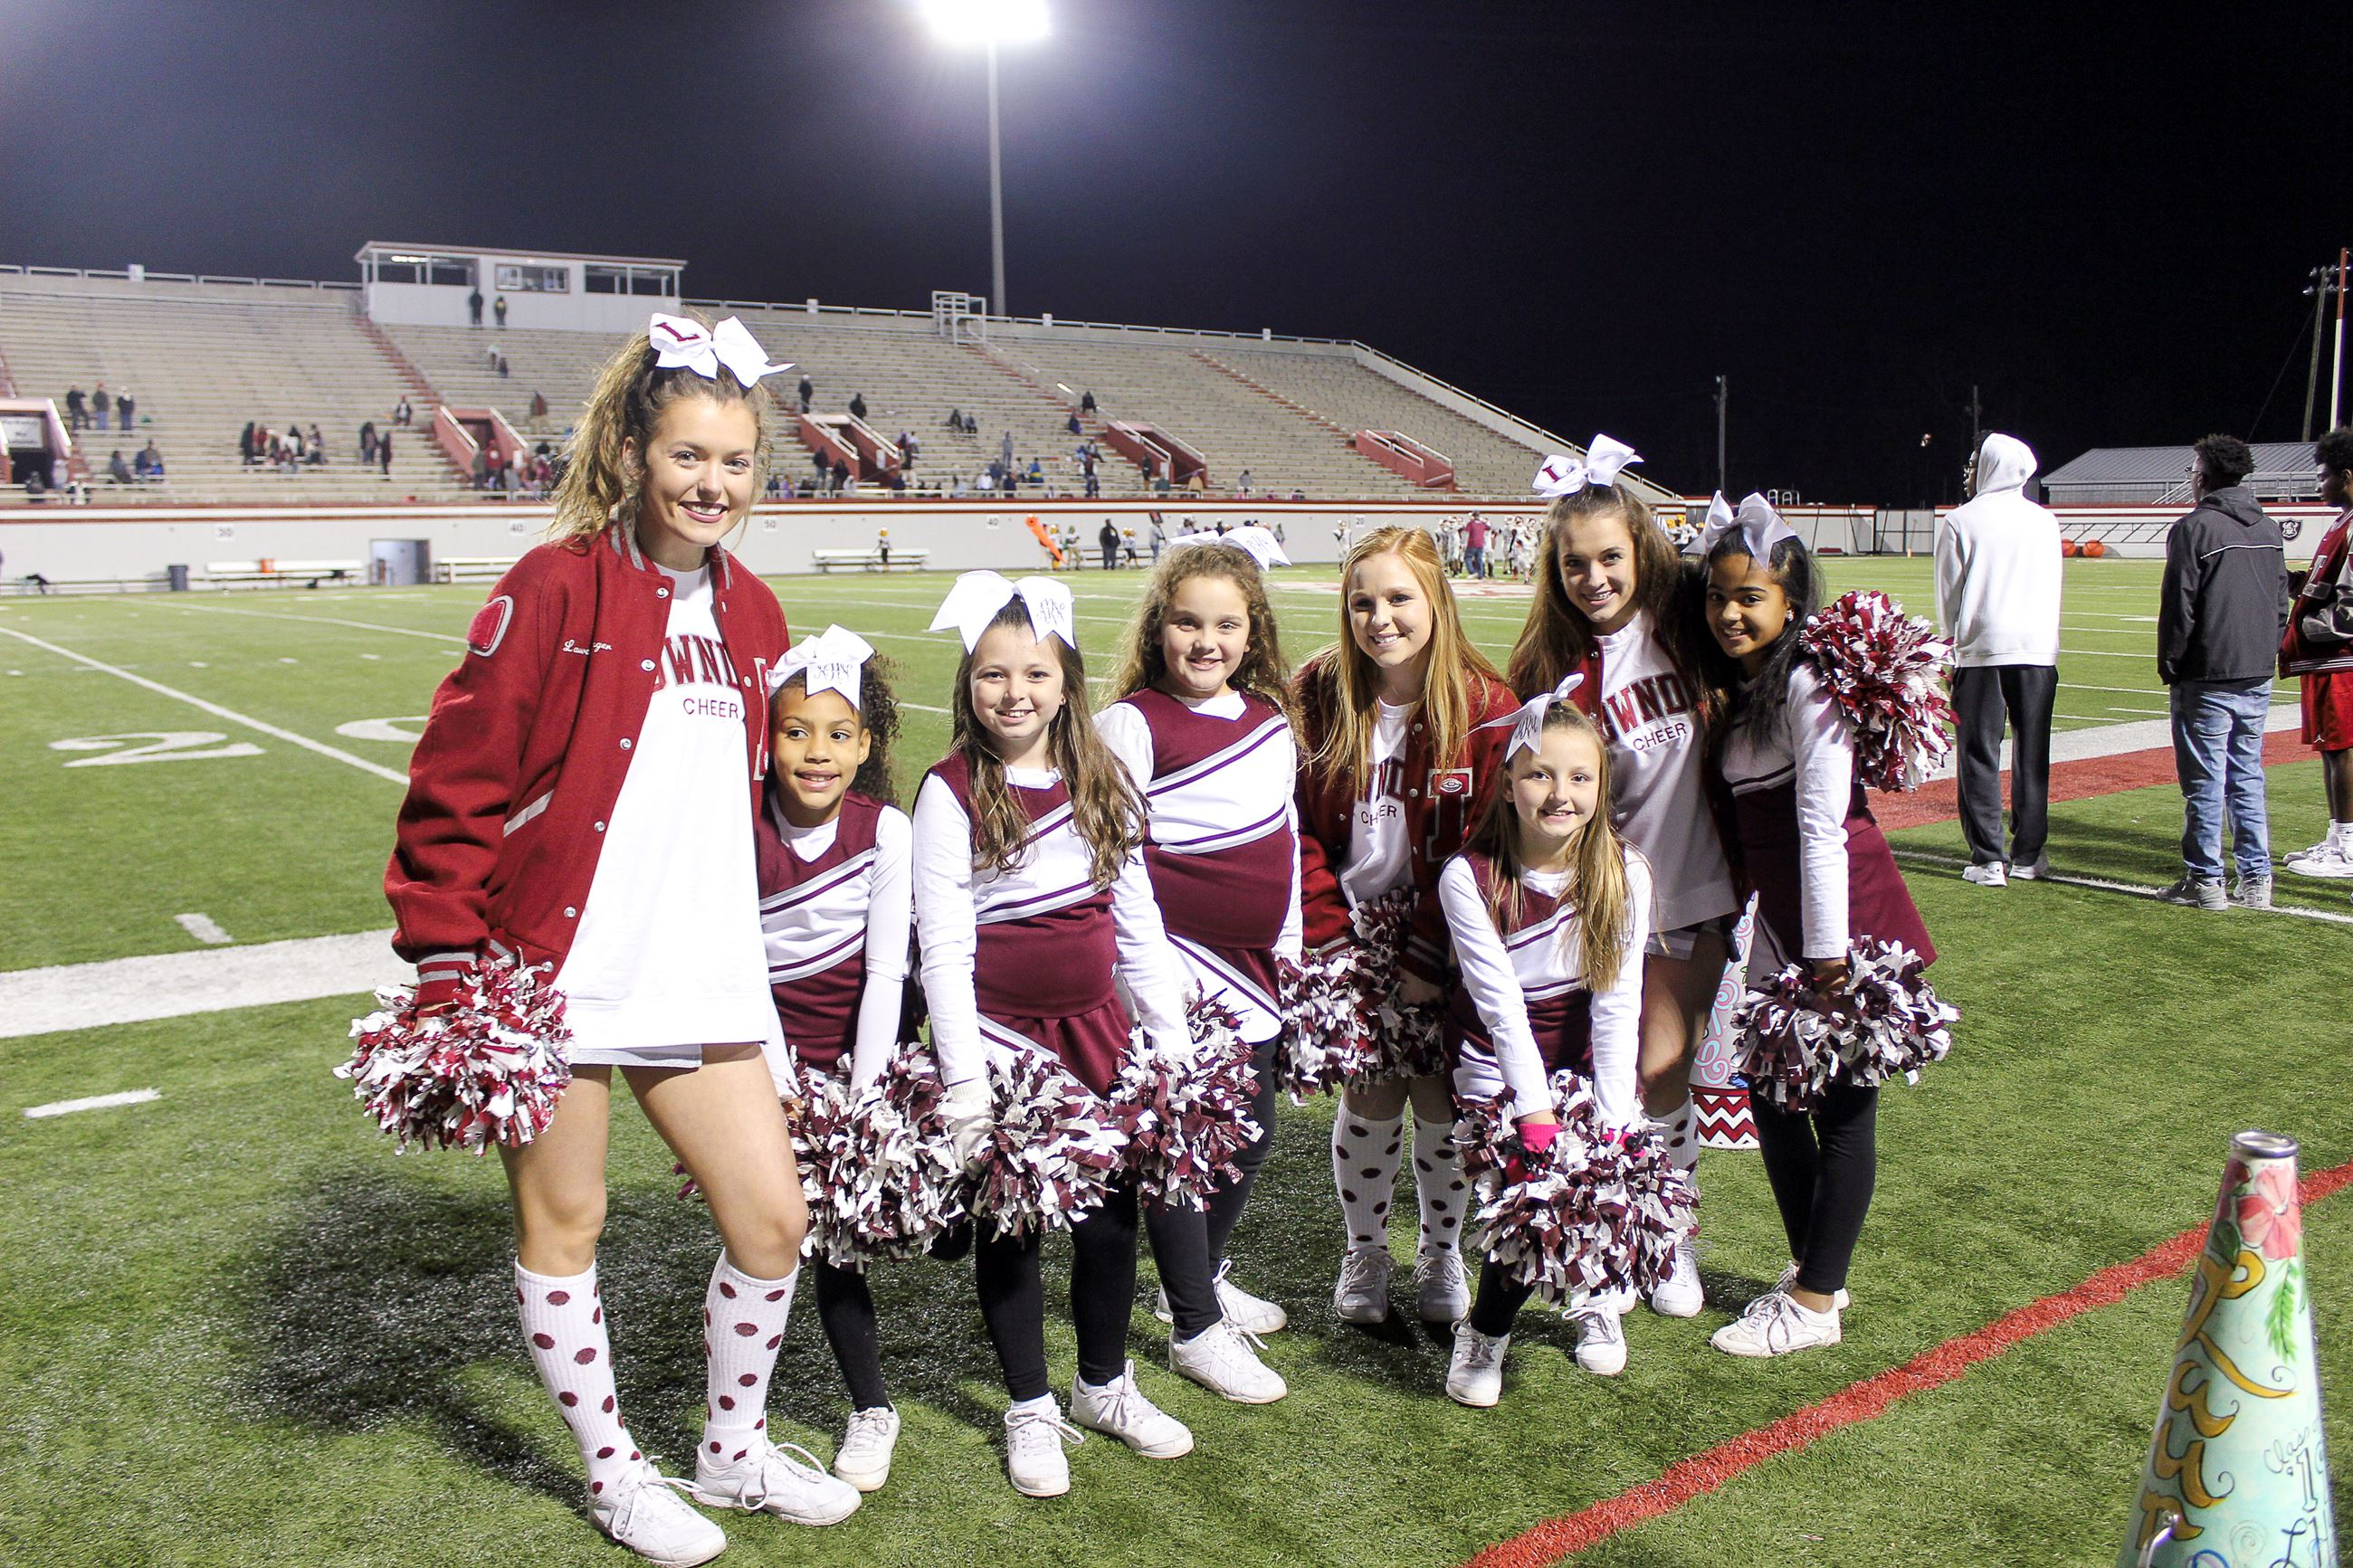 Image of cheerleaders posing for picture.